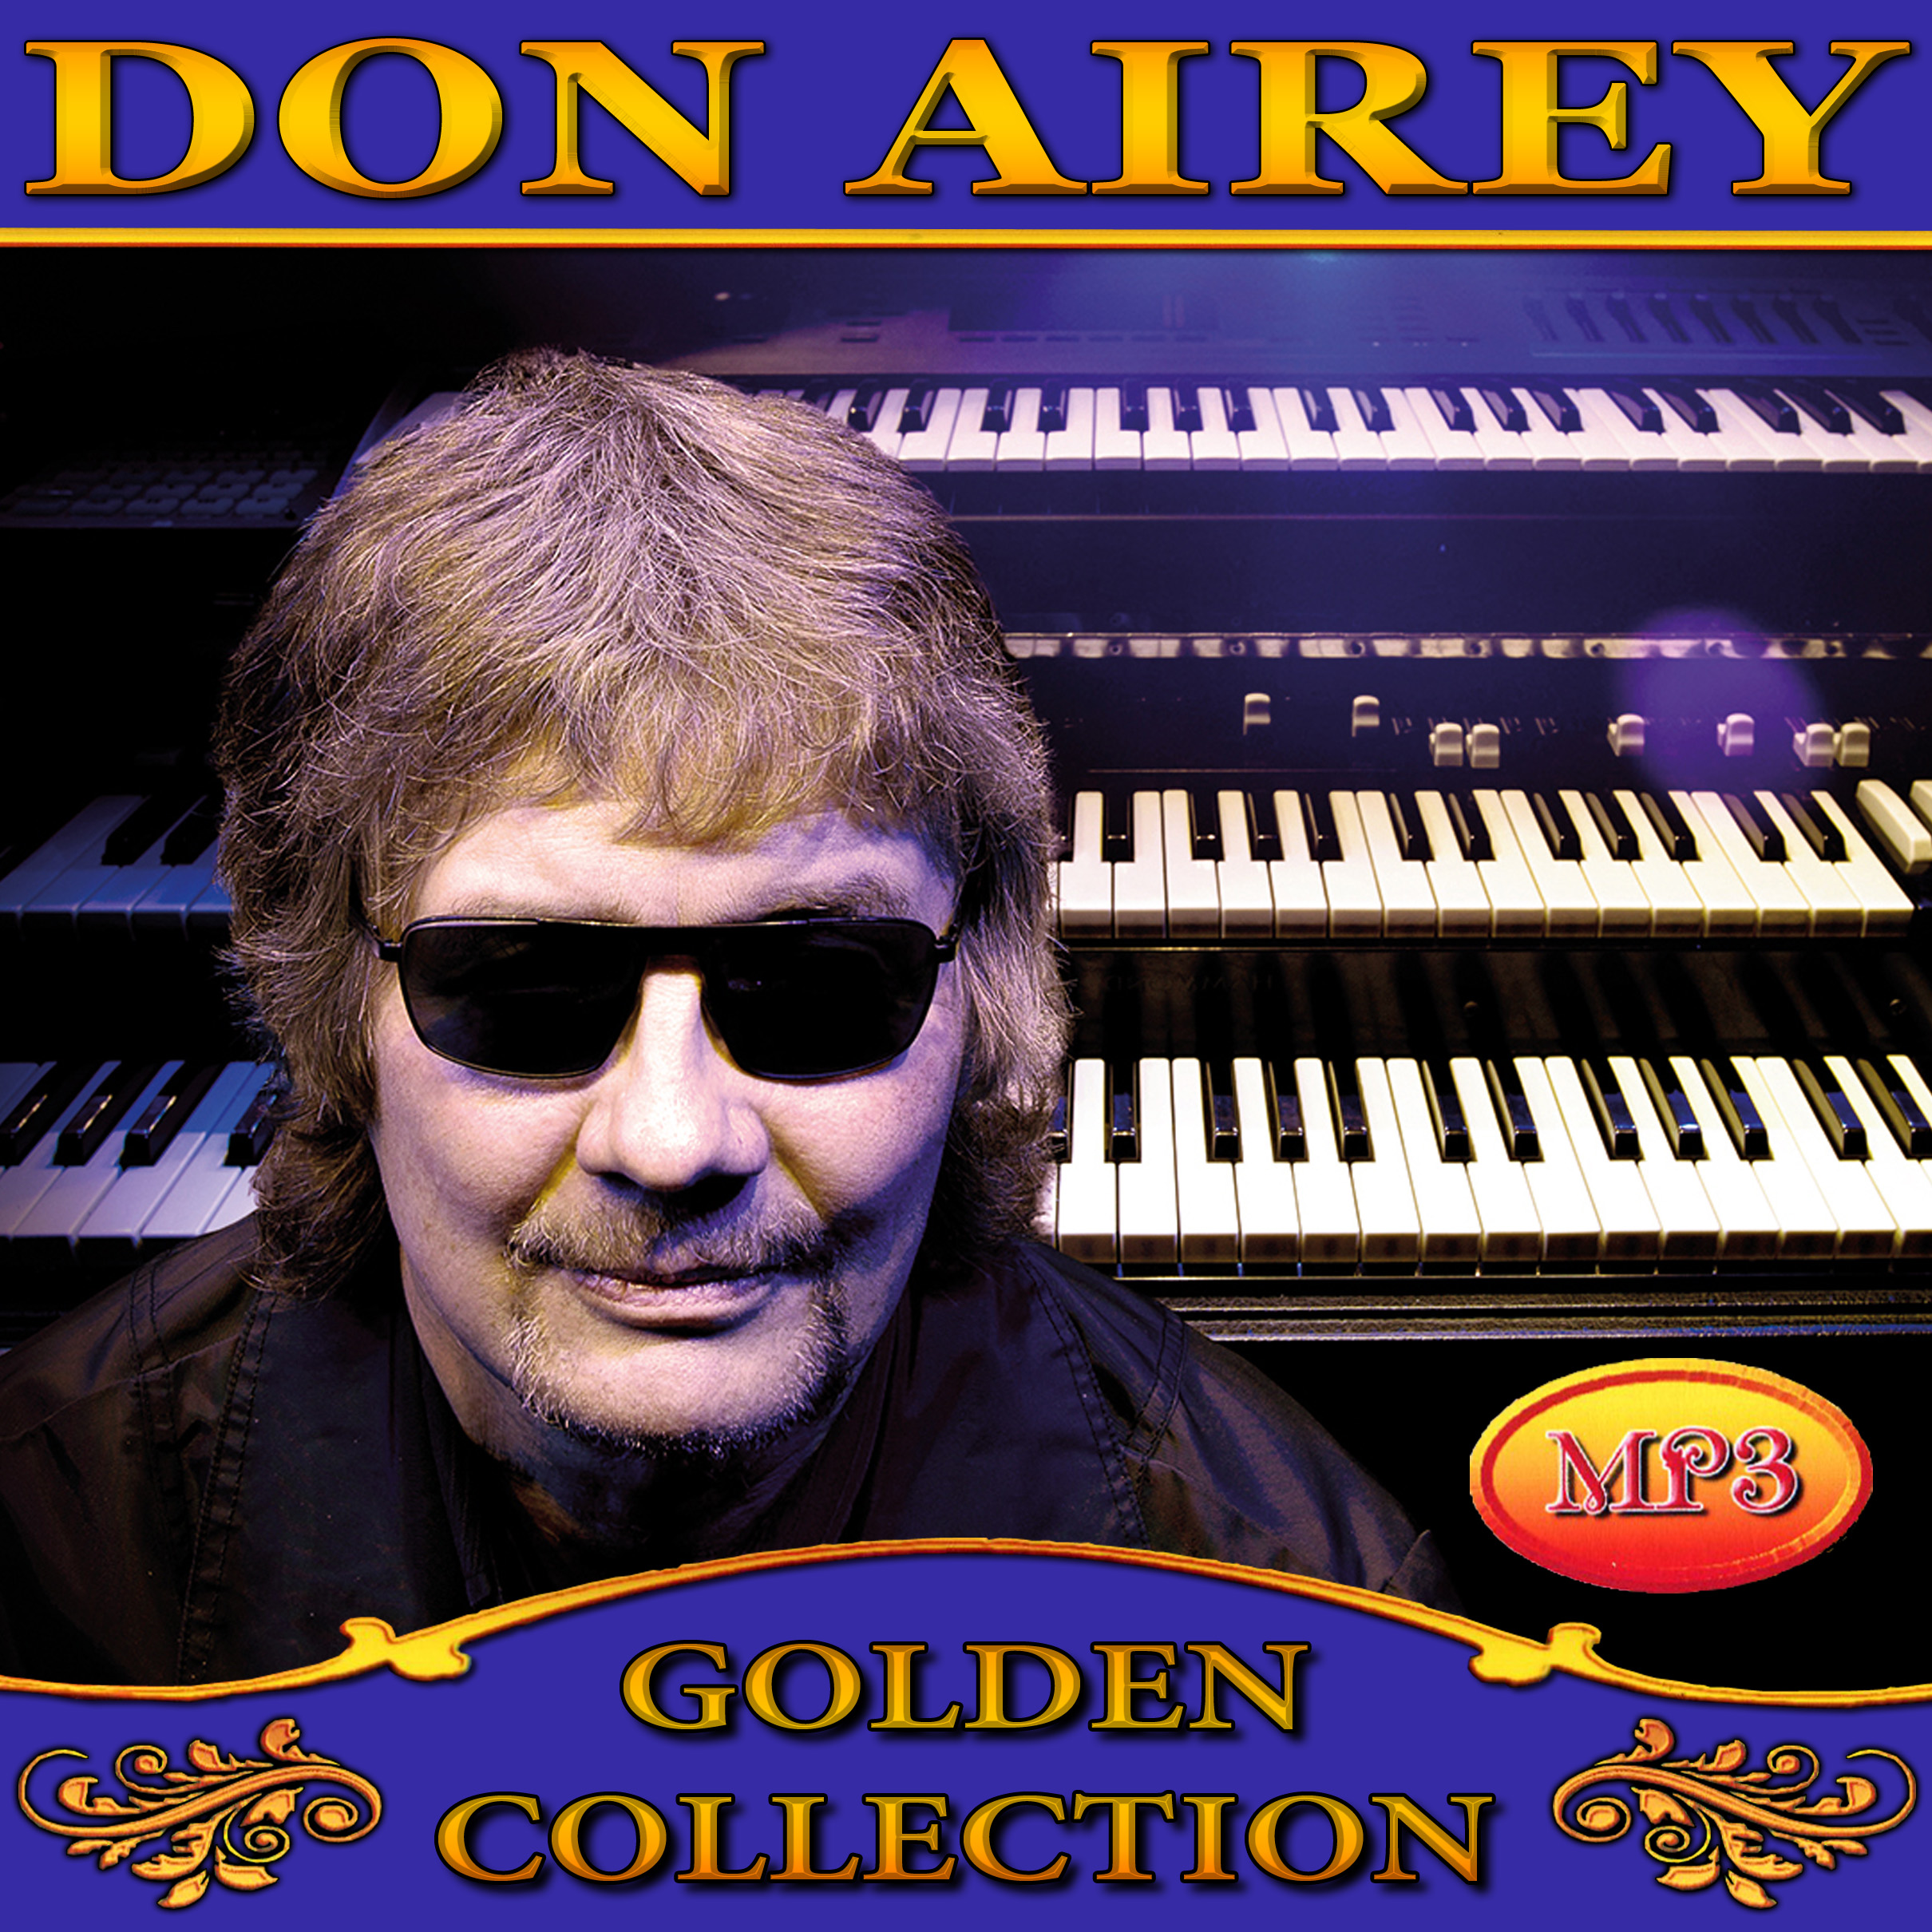 Don Airey [mp3]